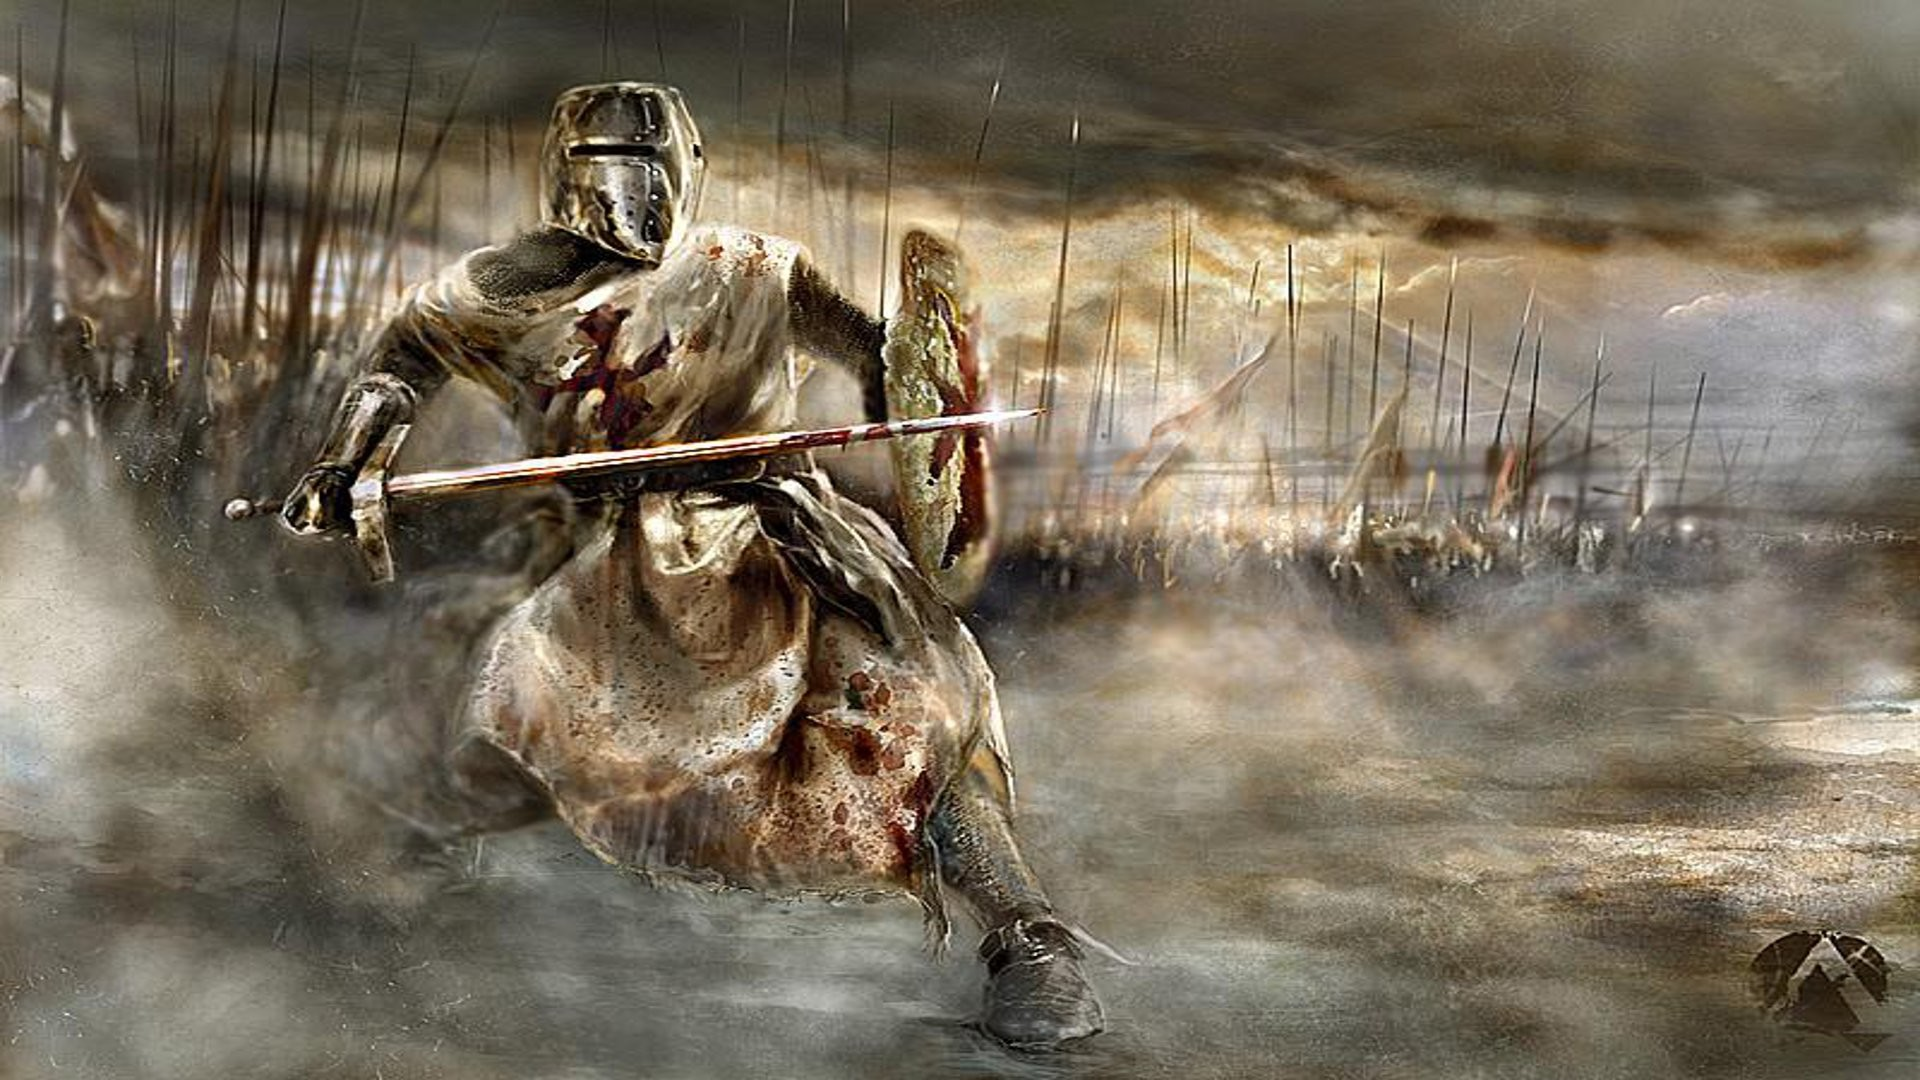 Knights Templar Wallpaper Background 59 images 1920x1080